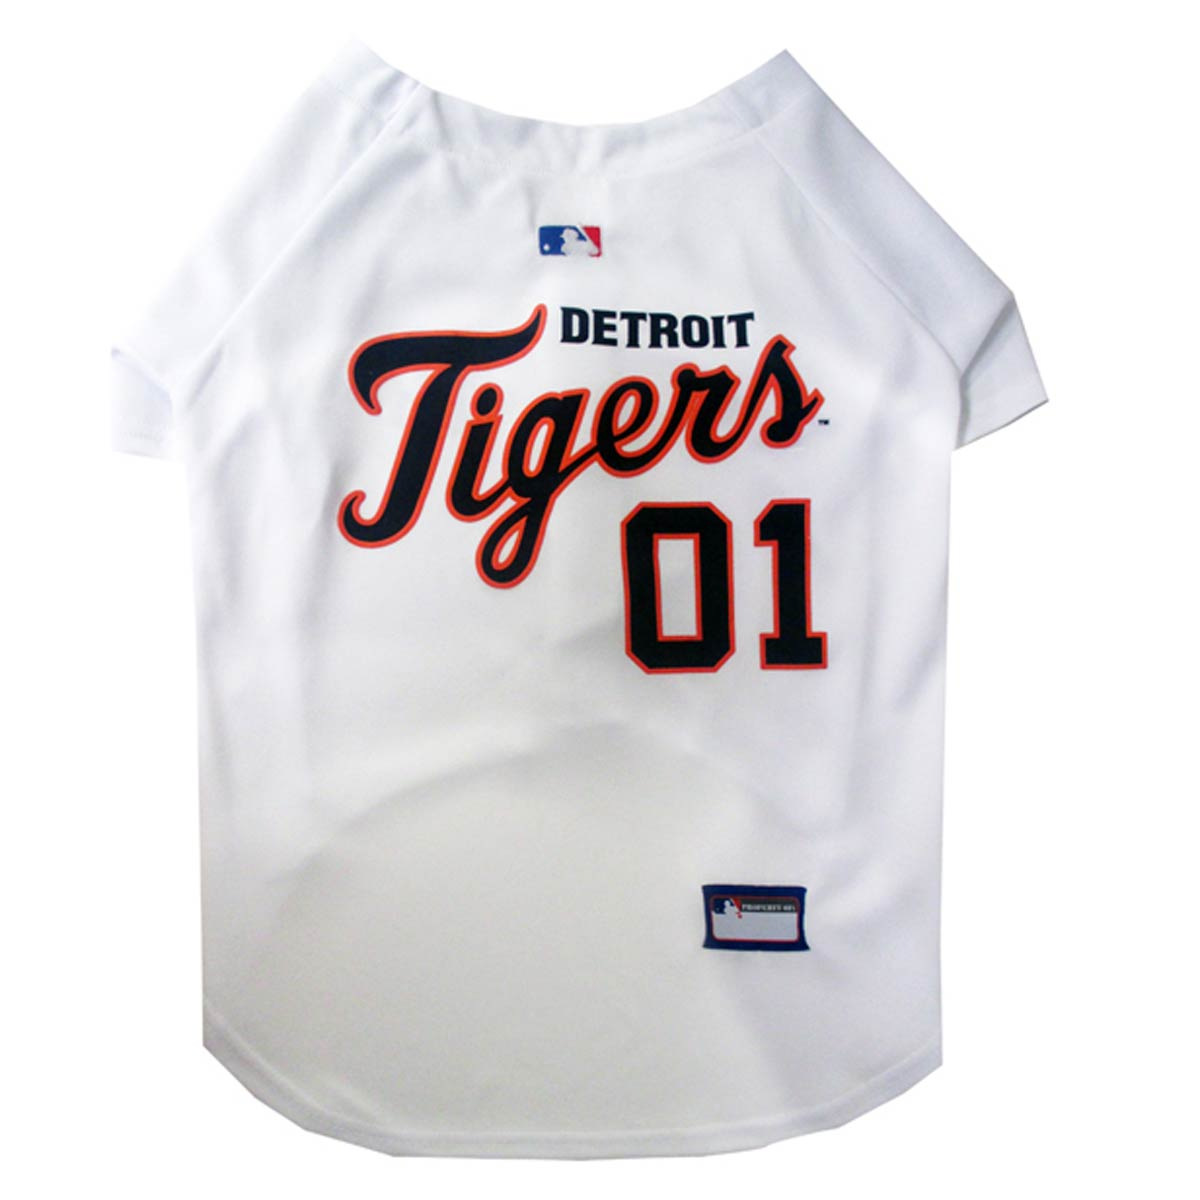 Detroit Tigers Officially Licensed Dog Jersey - White